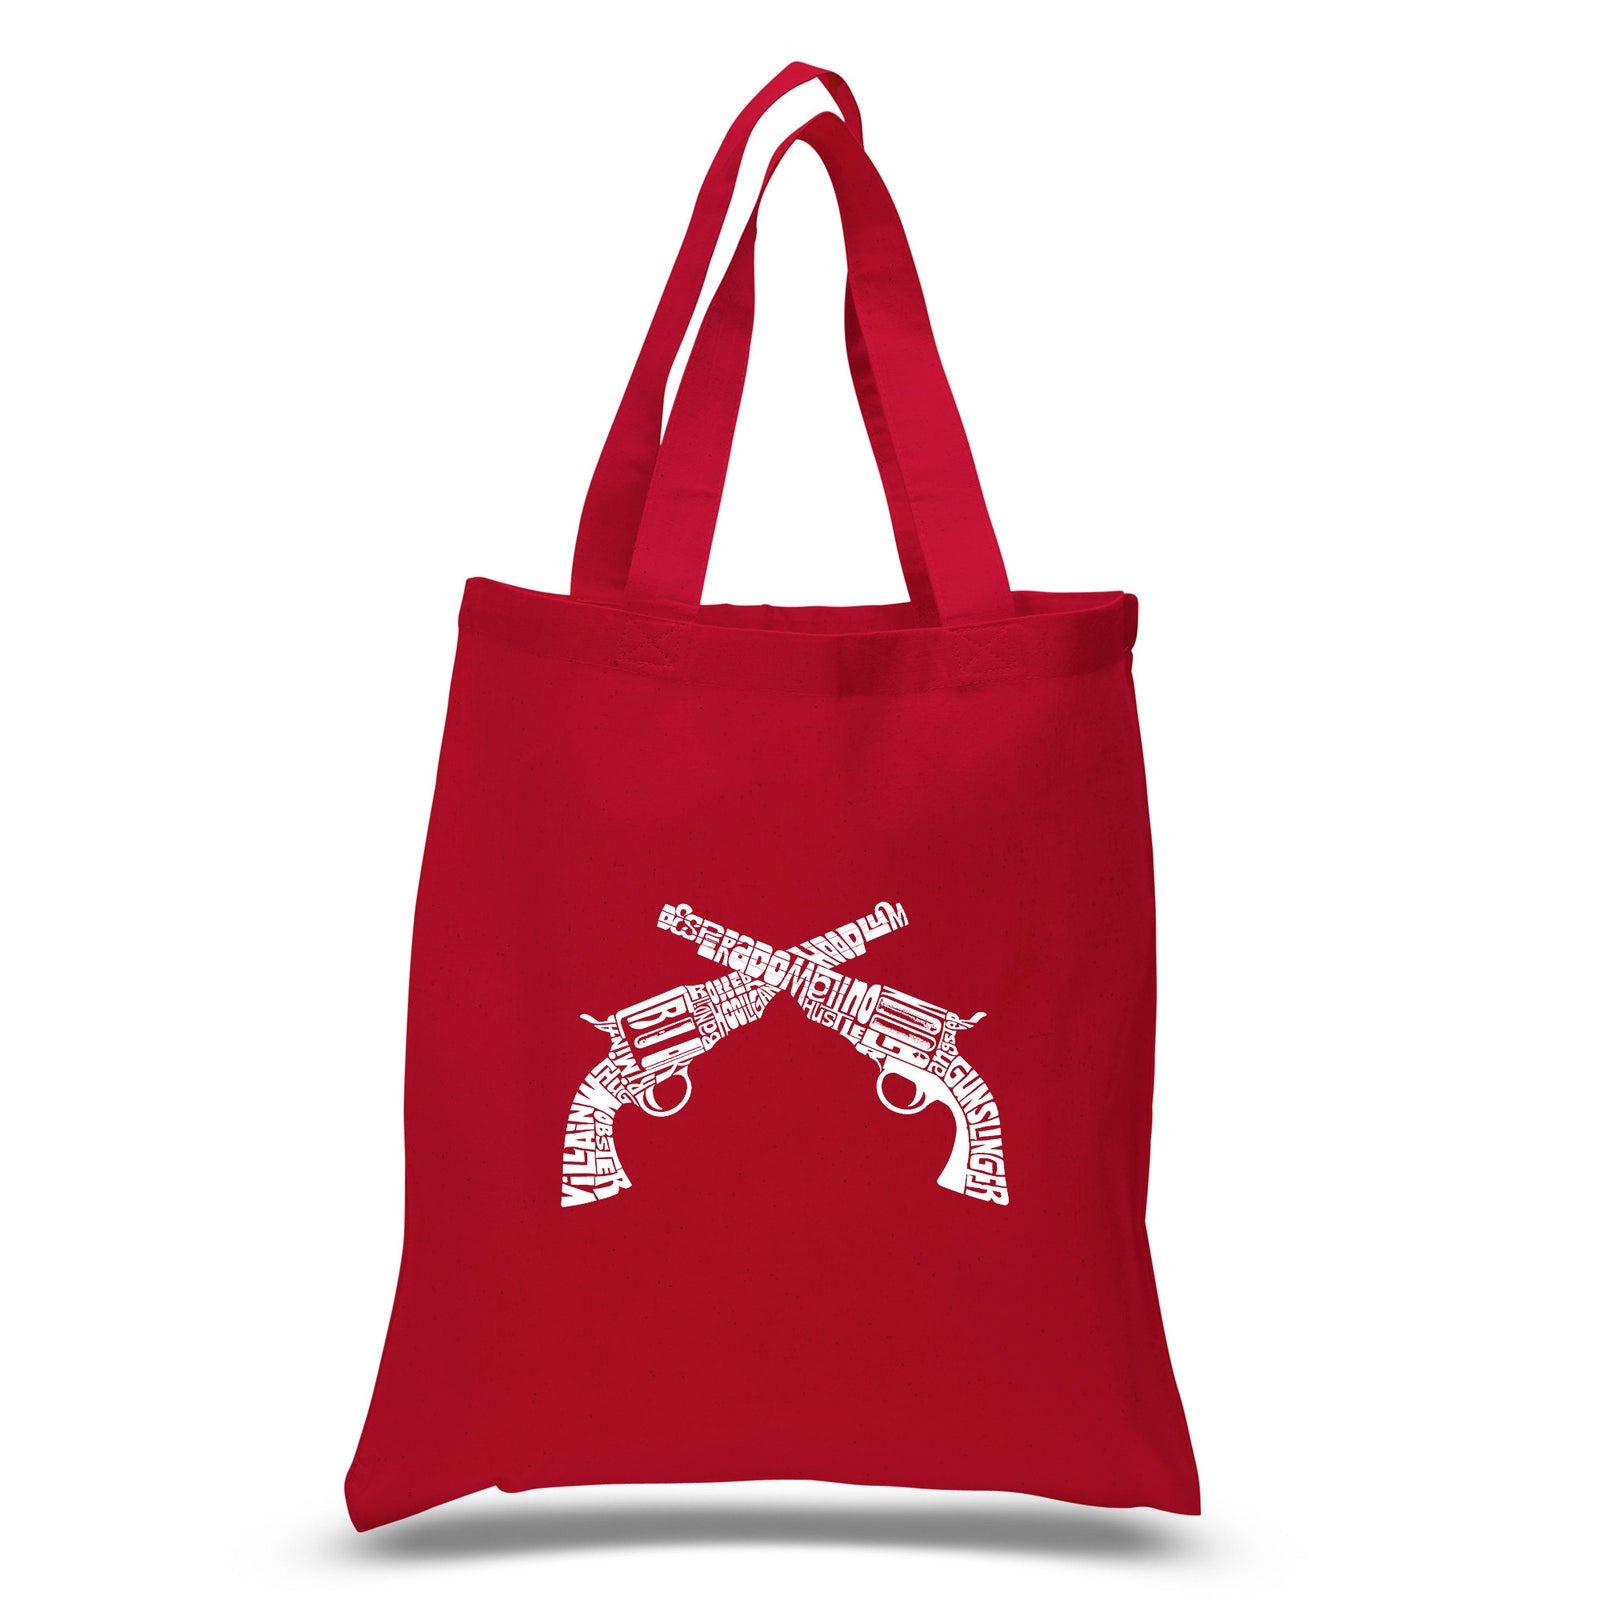 Small Tote Bag - CROSSED PISTOLS